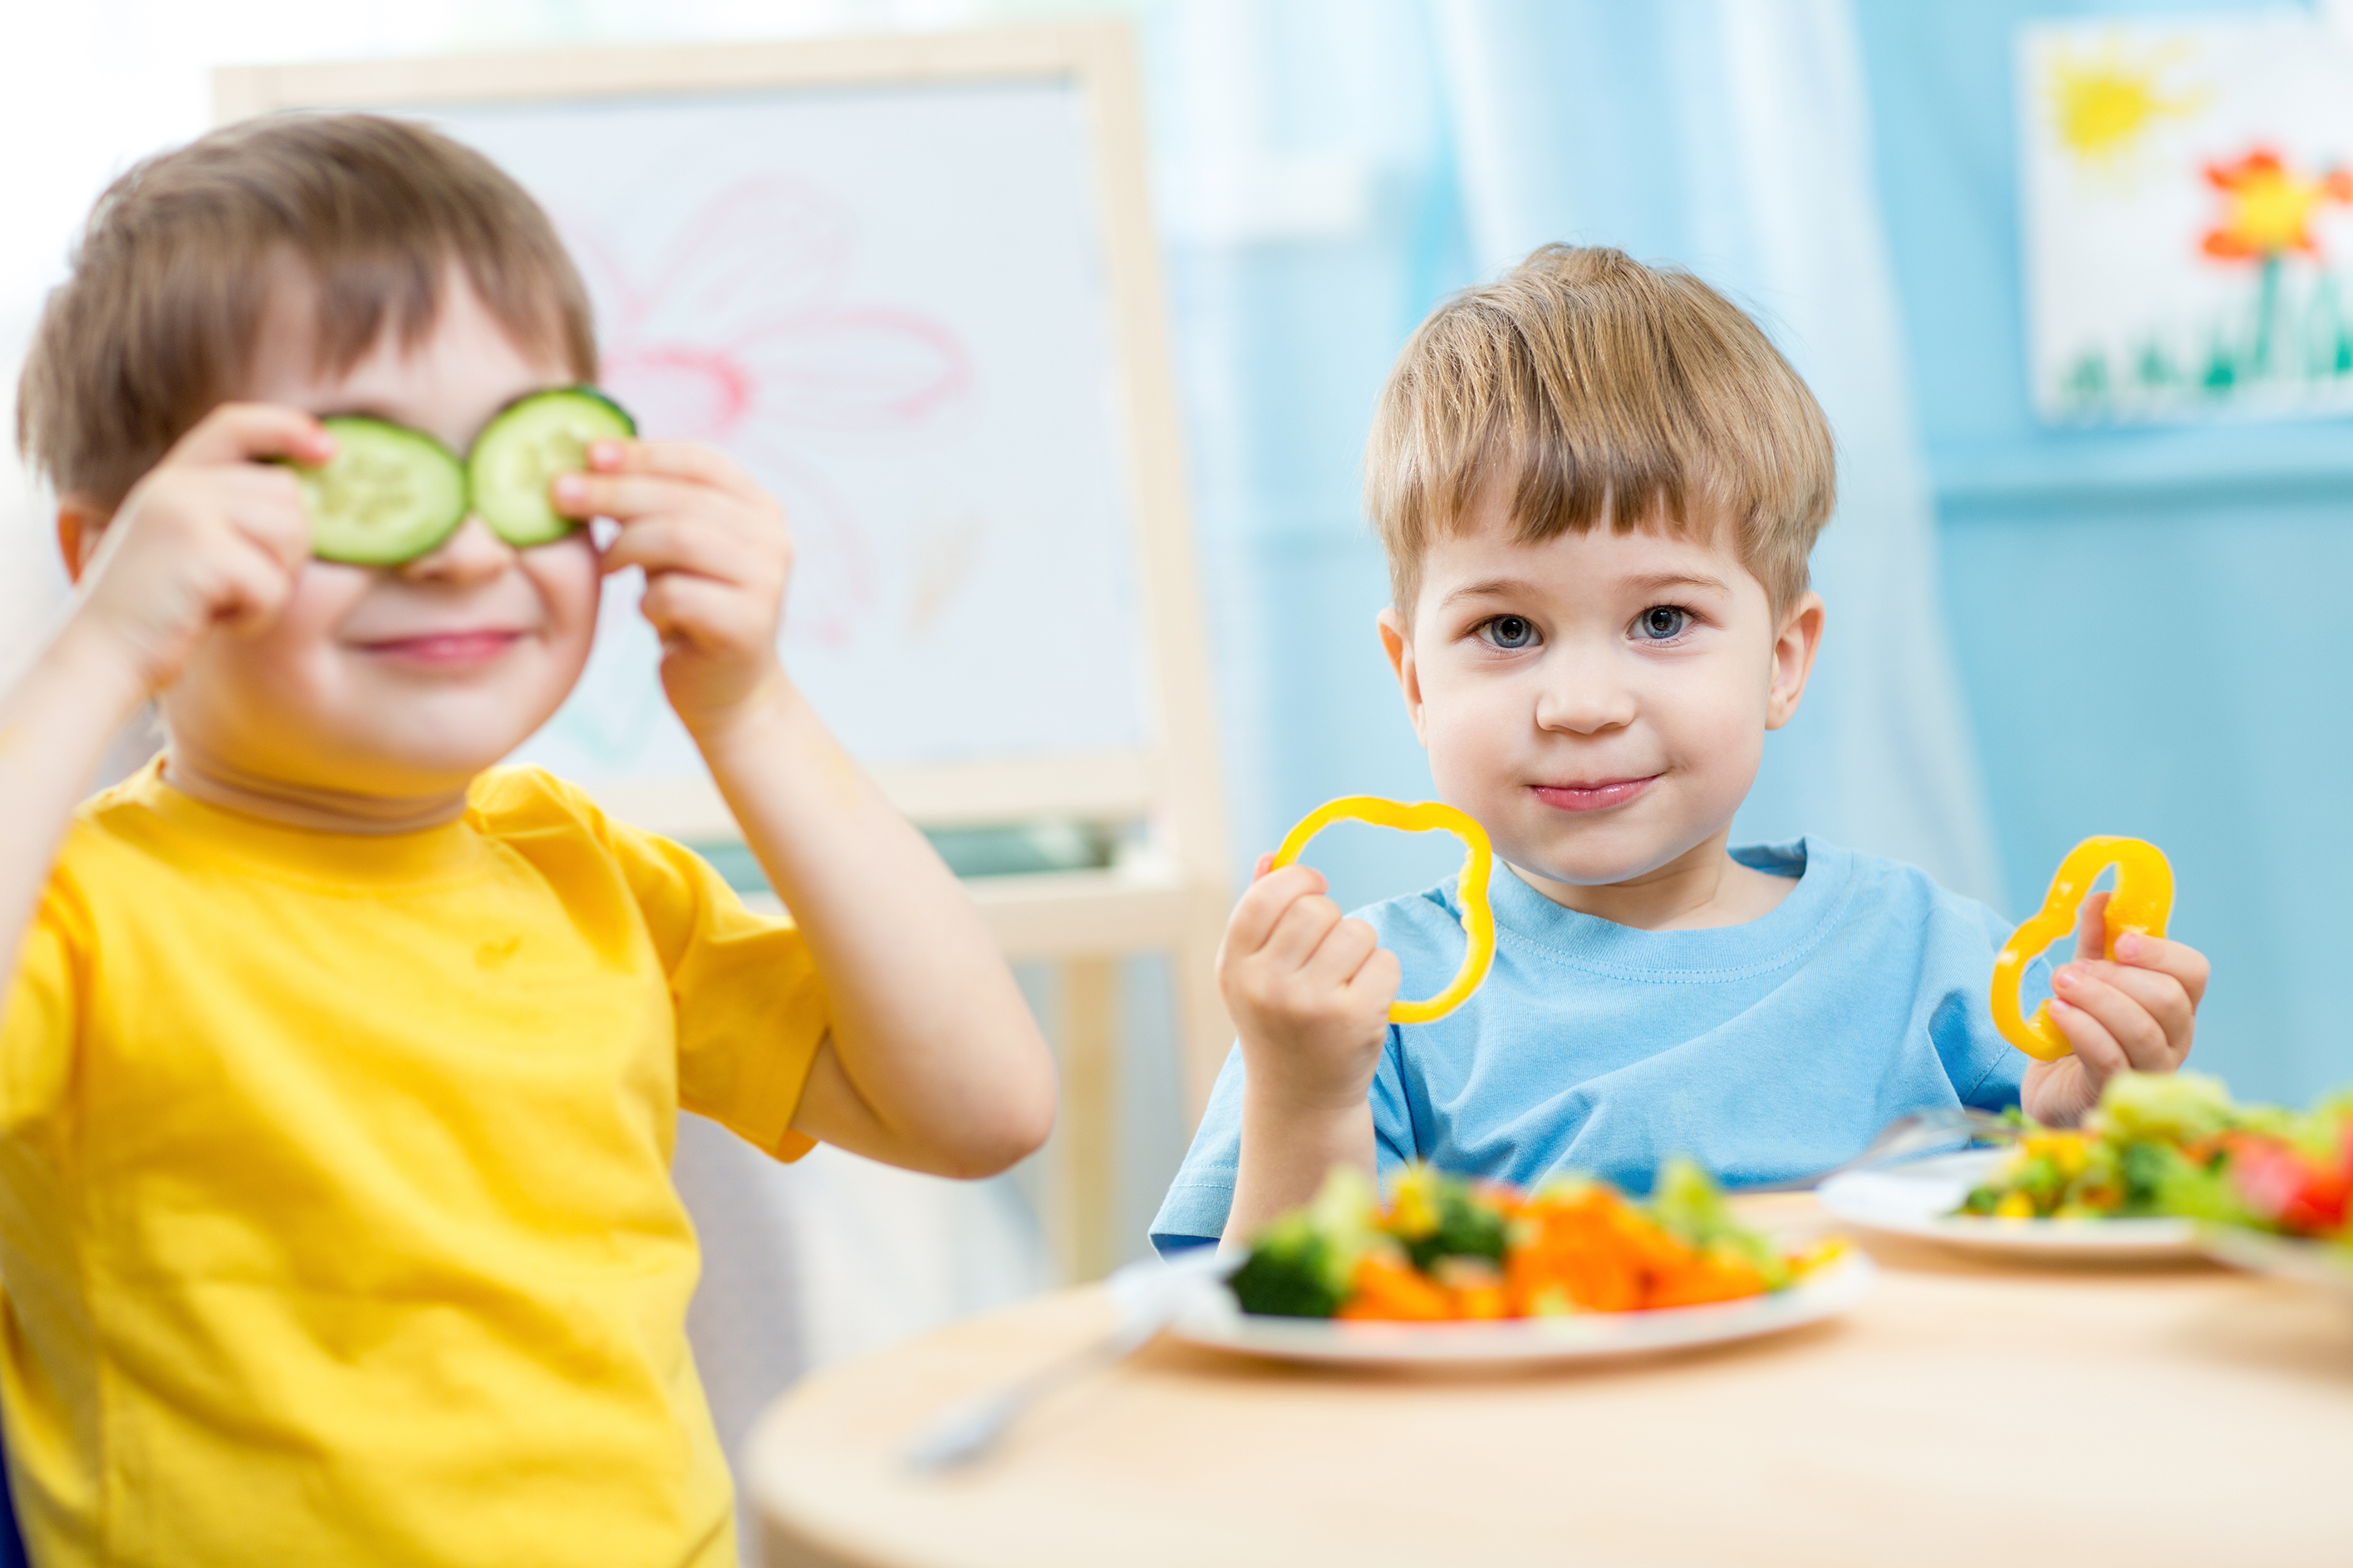 Get children interested in food and healthy eating